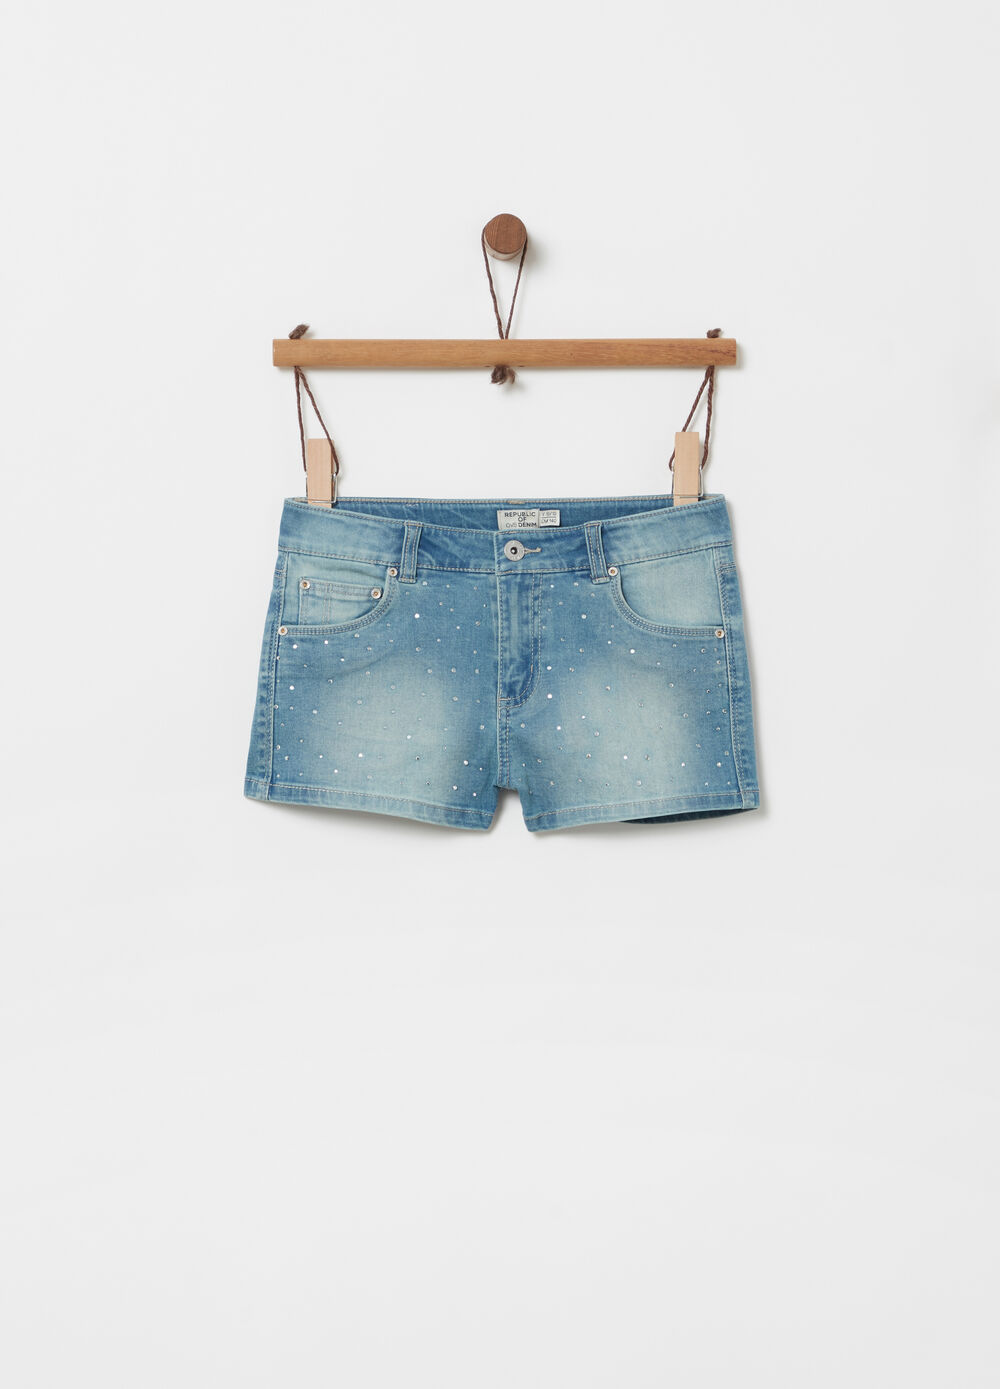 Denim shorts with adjustable waist, studs and pockets